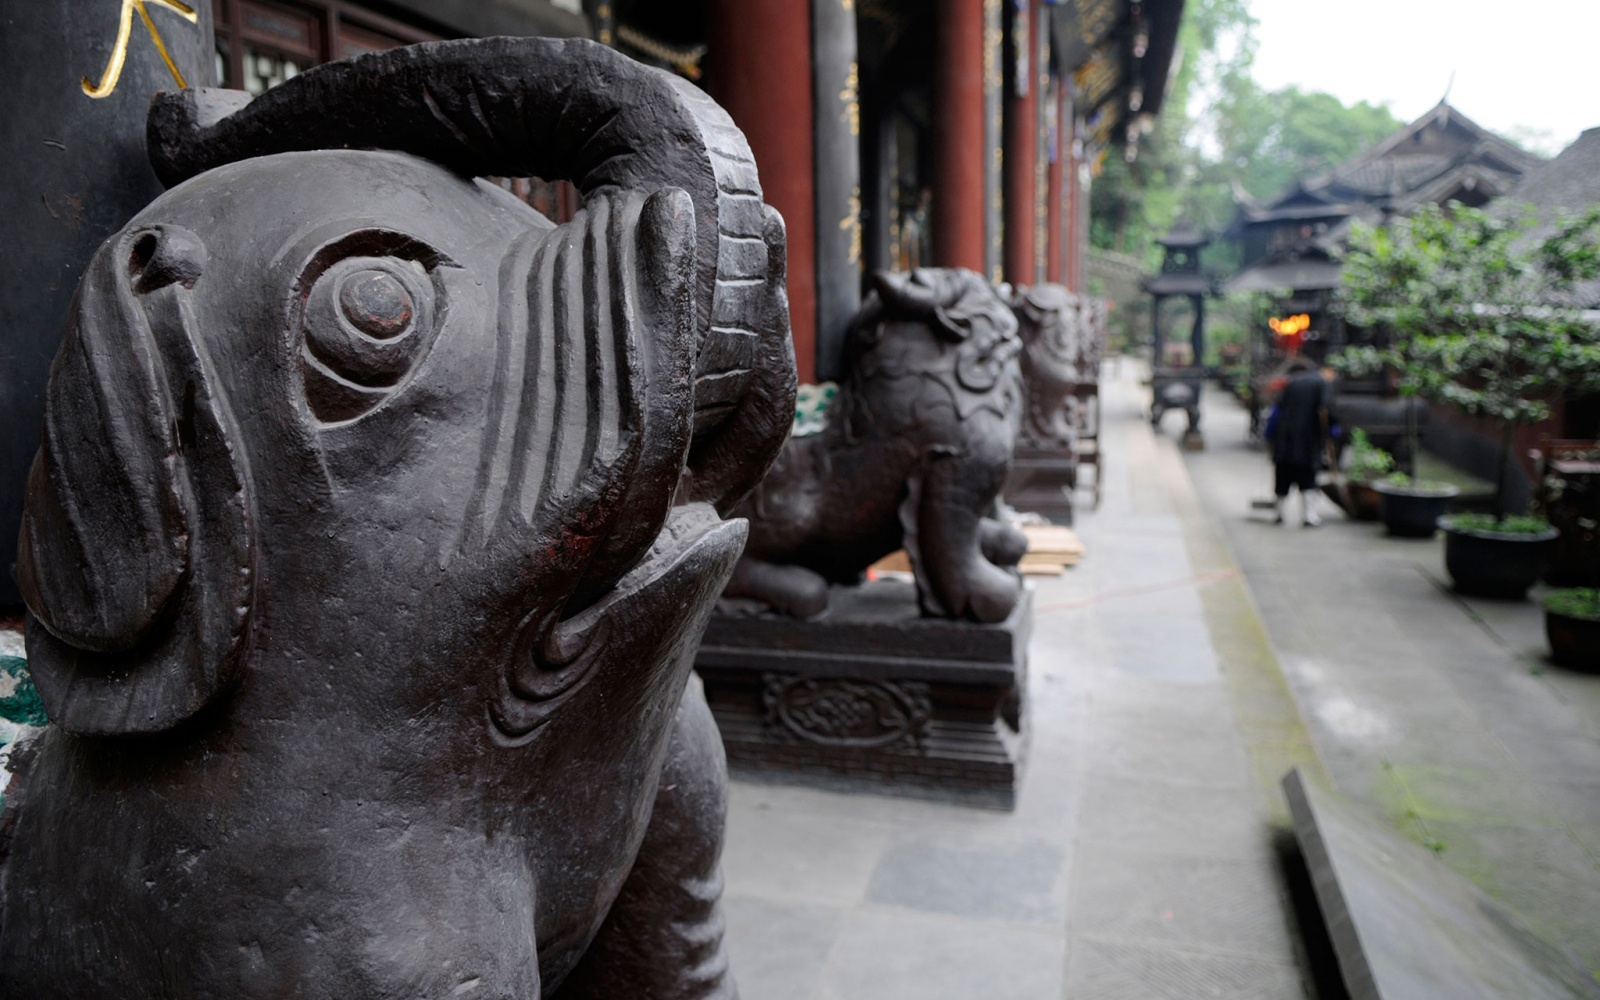 temple statues in Chengdu, China